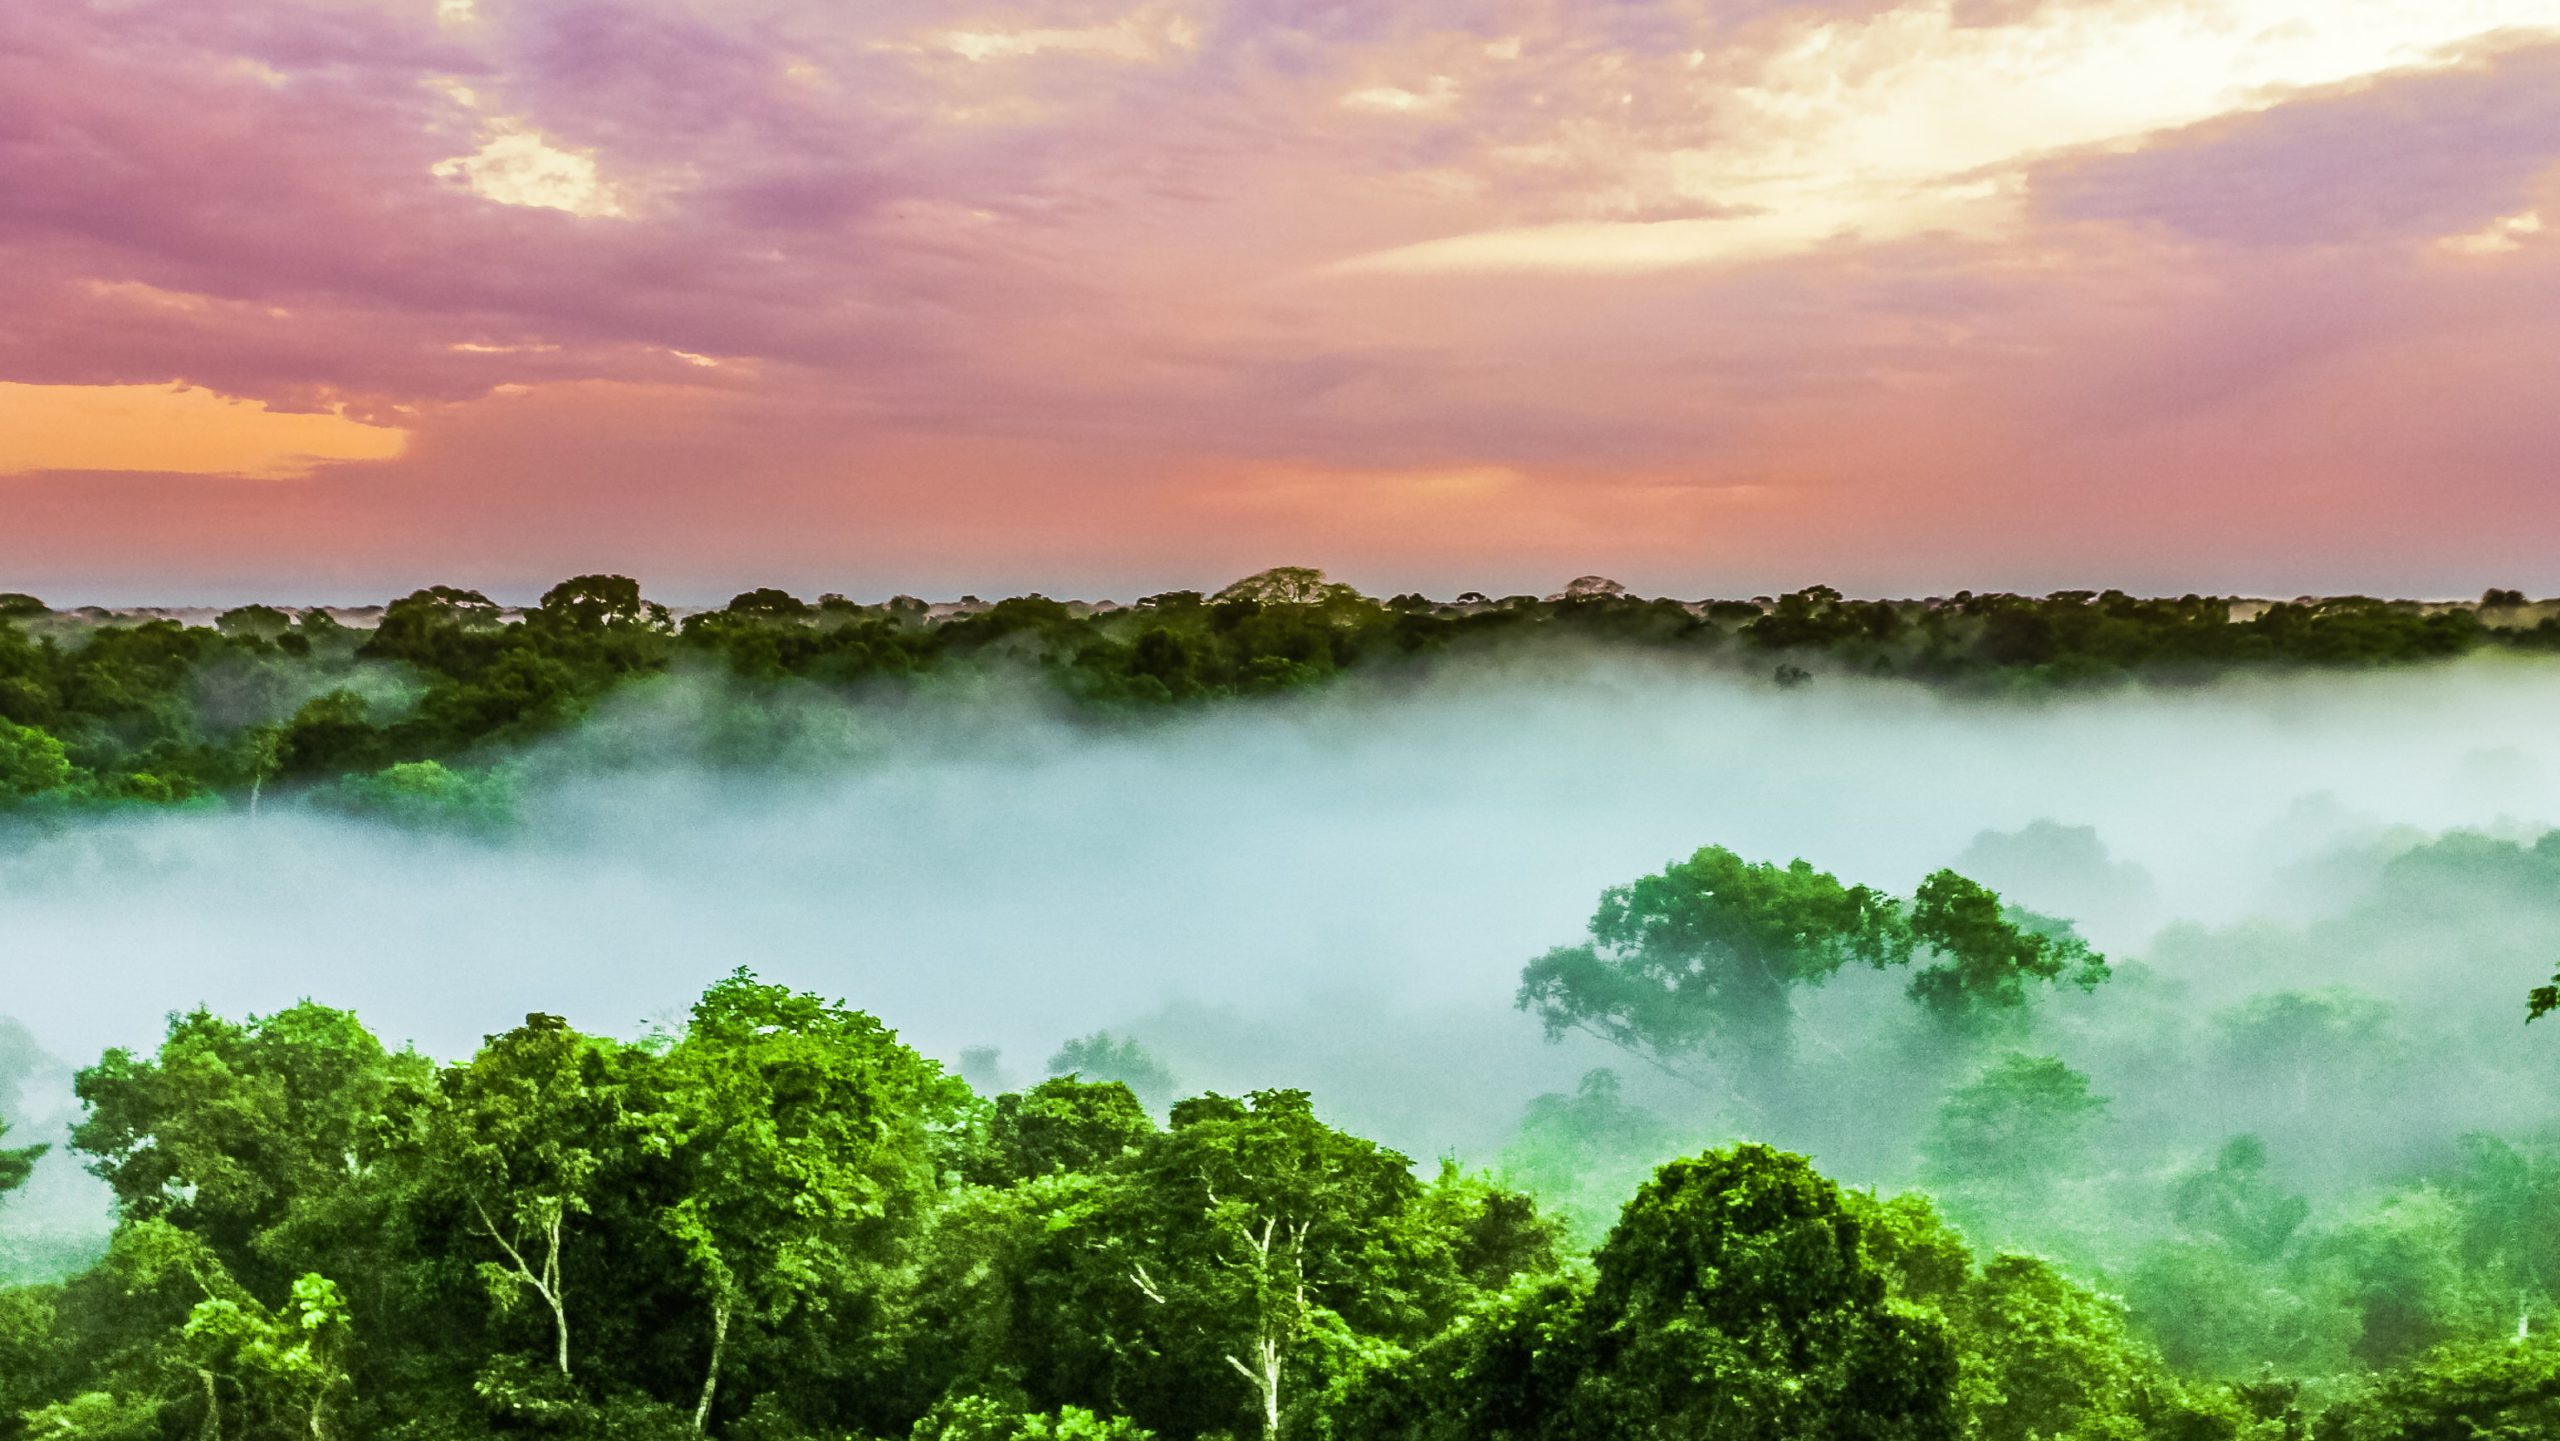 Mining the Amazon brings low return for local communities - report